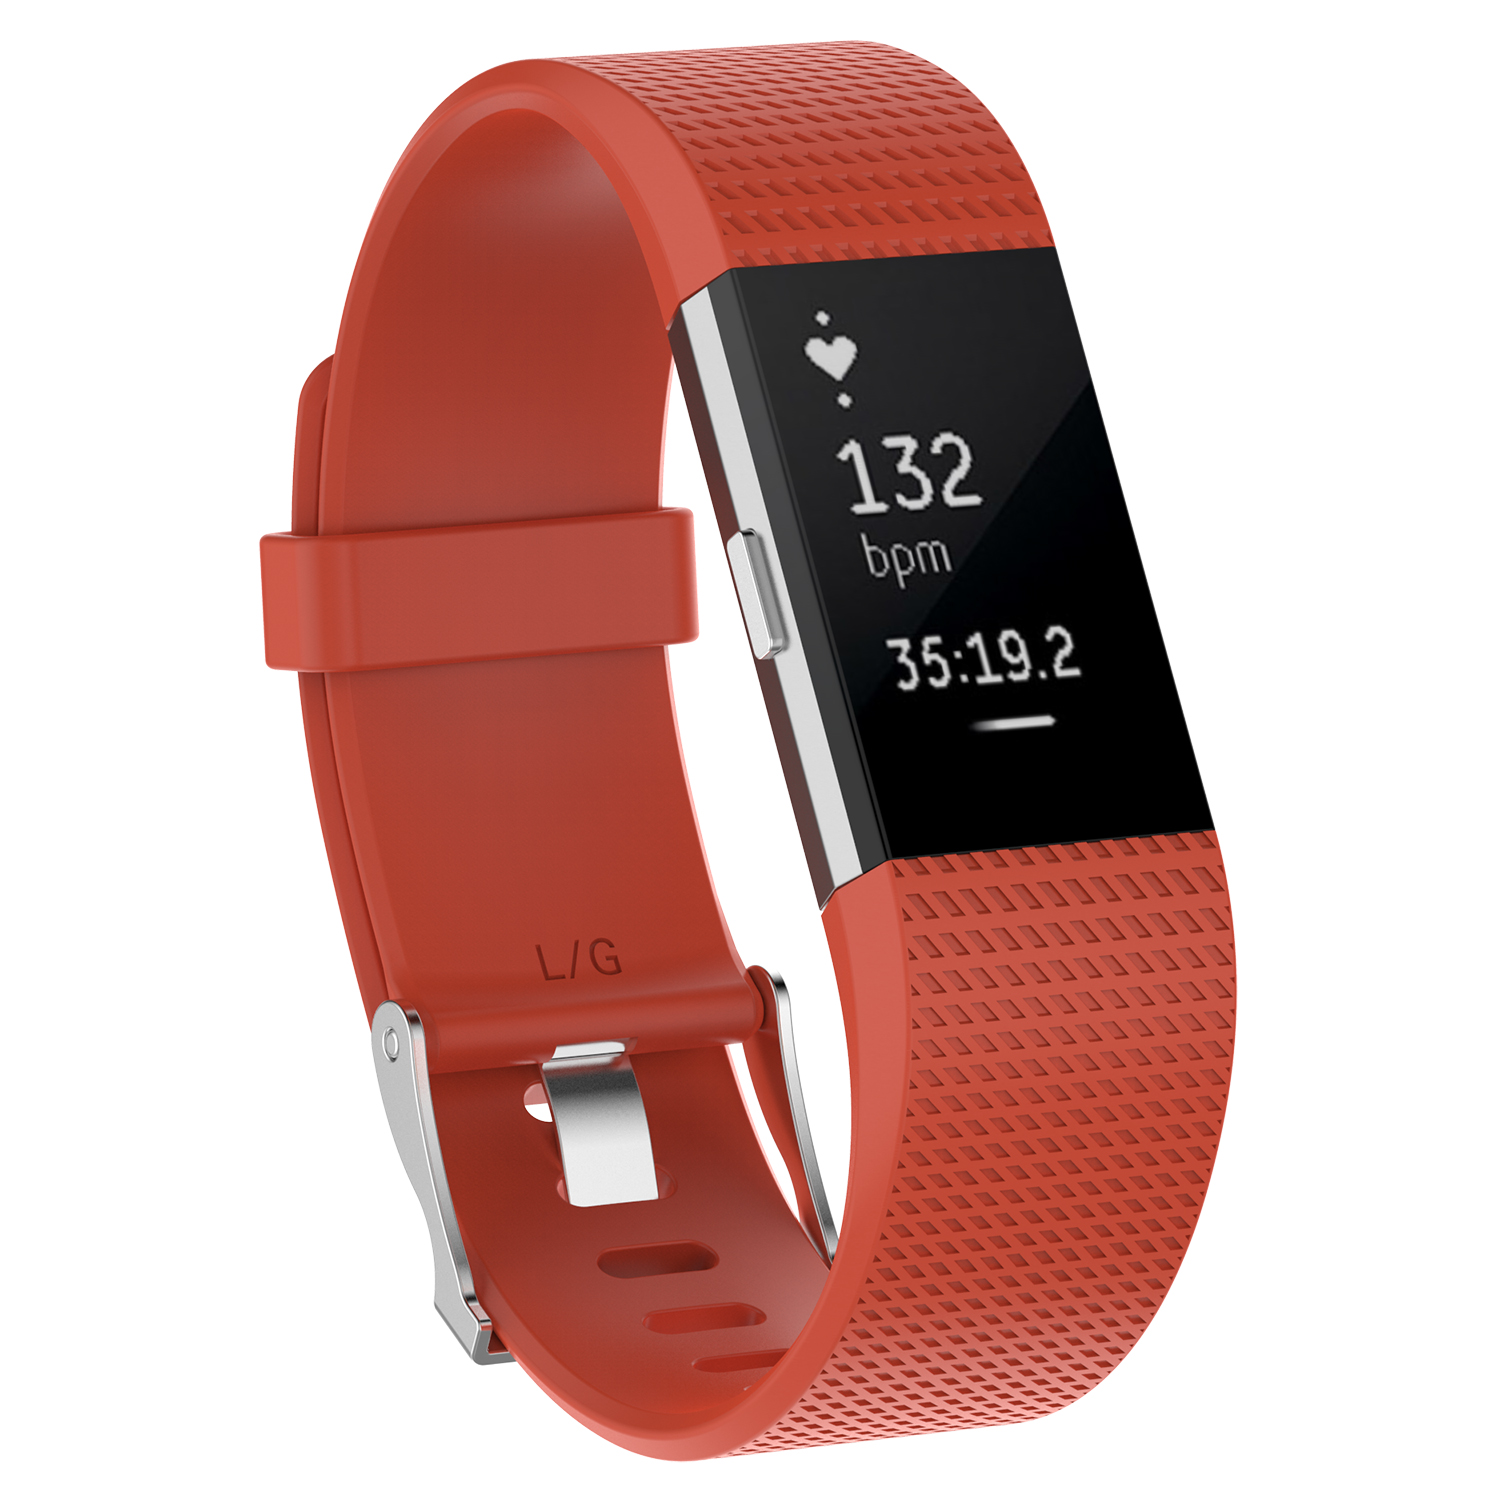 Replacement-Silicone-Wristband-Watch-Strap-Bands-Bracelet-For-Fitbit-Charge-2 thumbnail 41